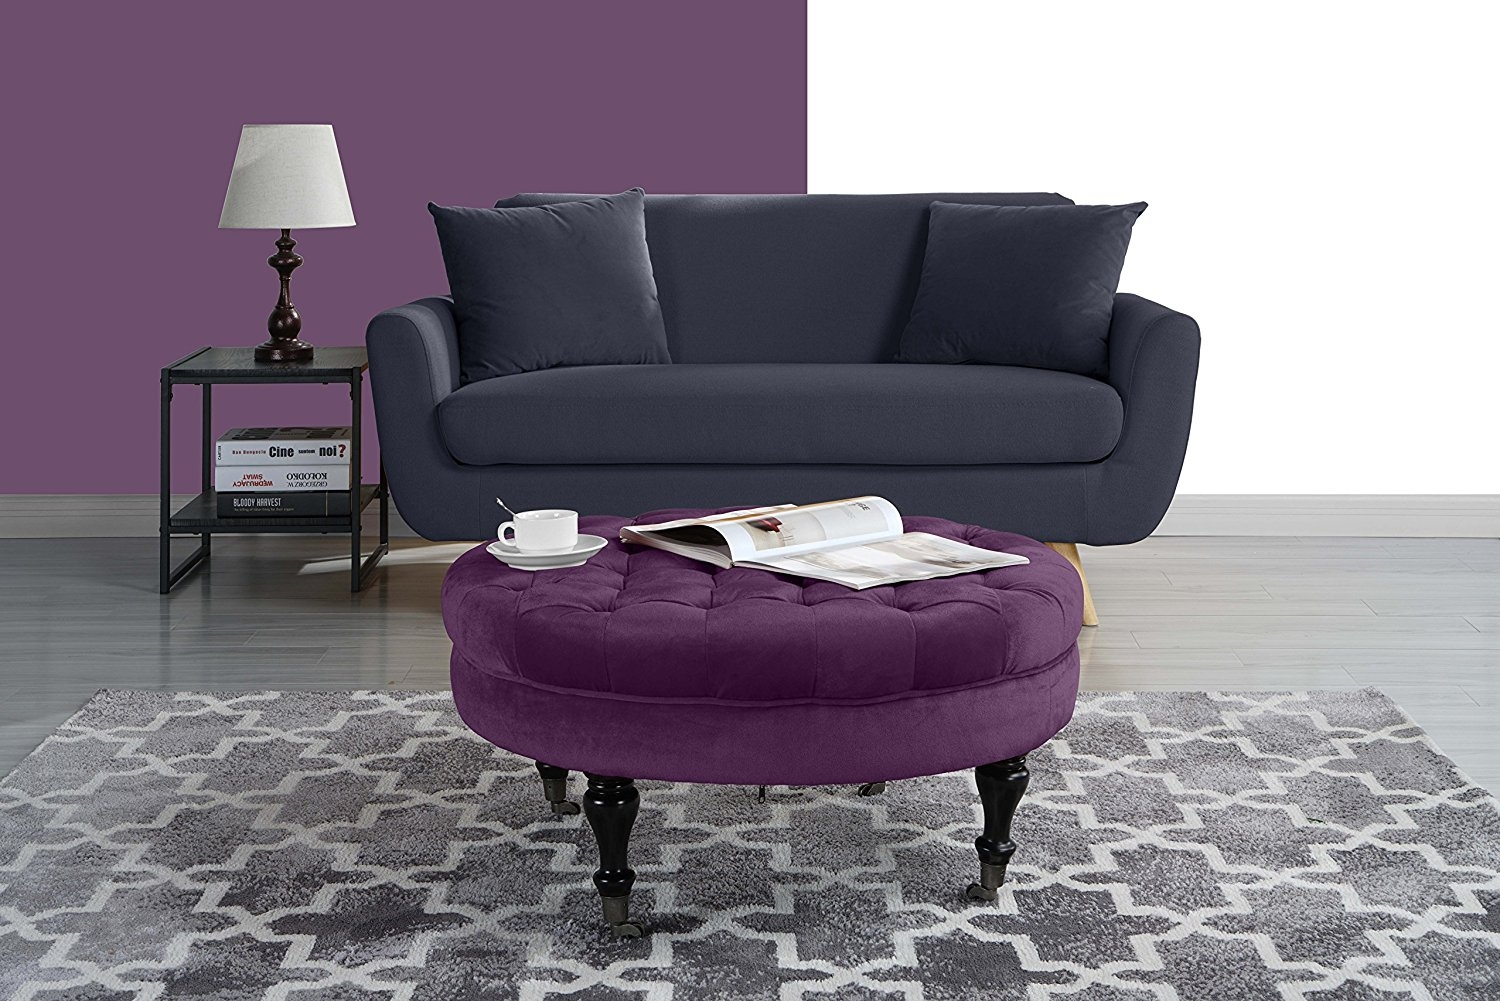 Divano Roma Furniture   Round Tufted Velvet Coffee Table With Casters,  Ottoman With Wheels (Red)   Walmart.com